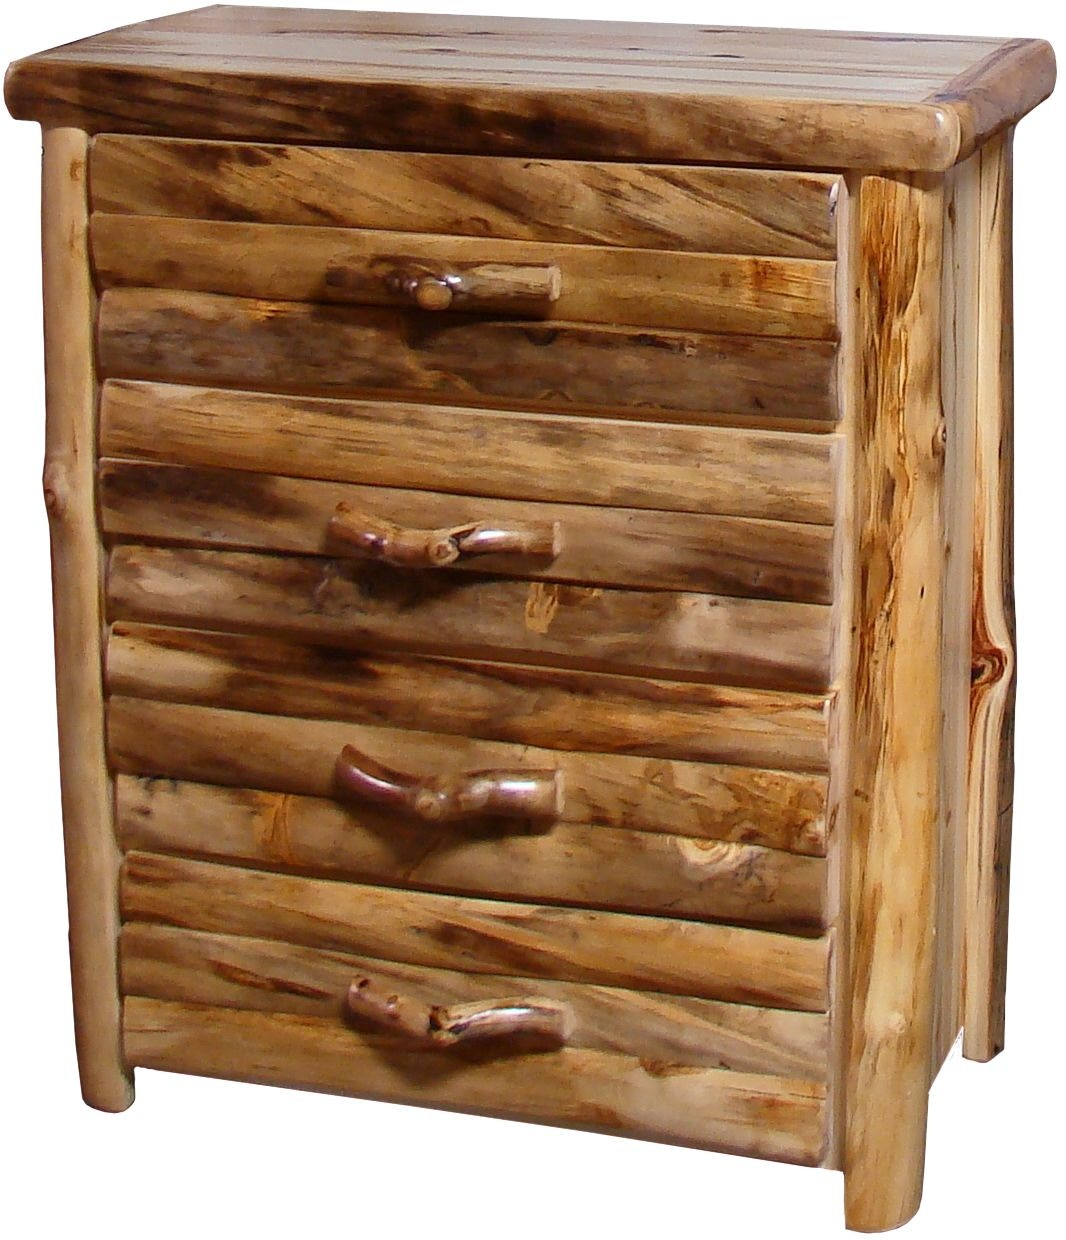 Rustic Log Furniture Bedroom 4 Drawer Chest 4dcl 39 Nn